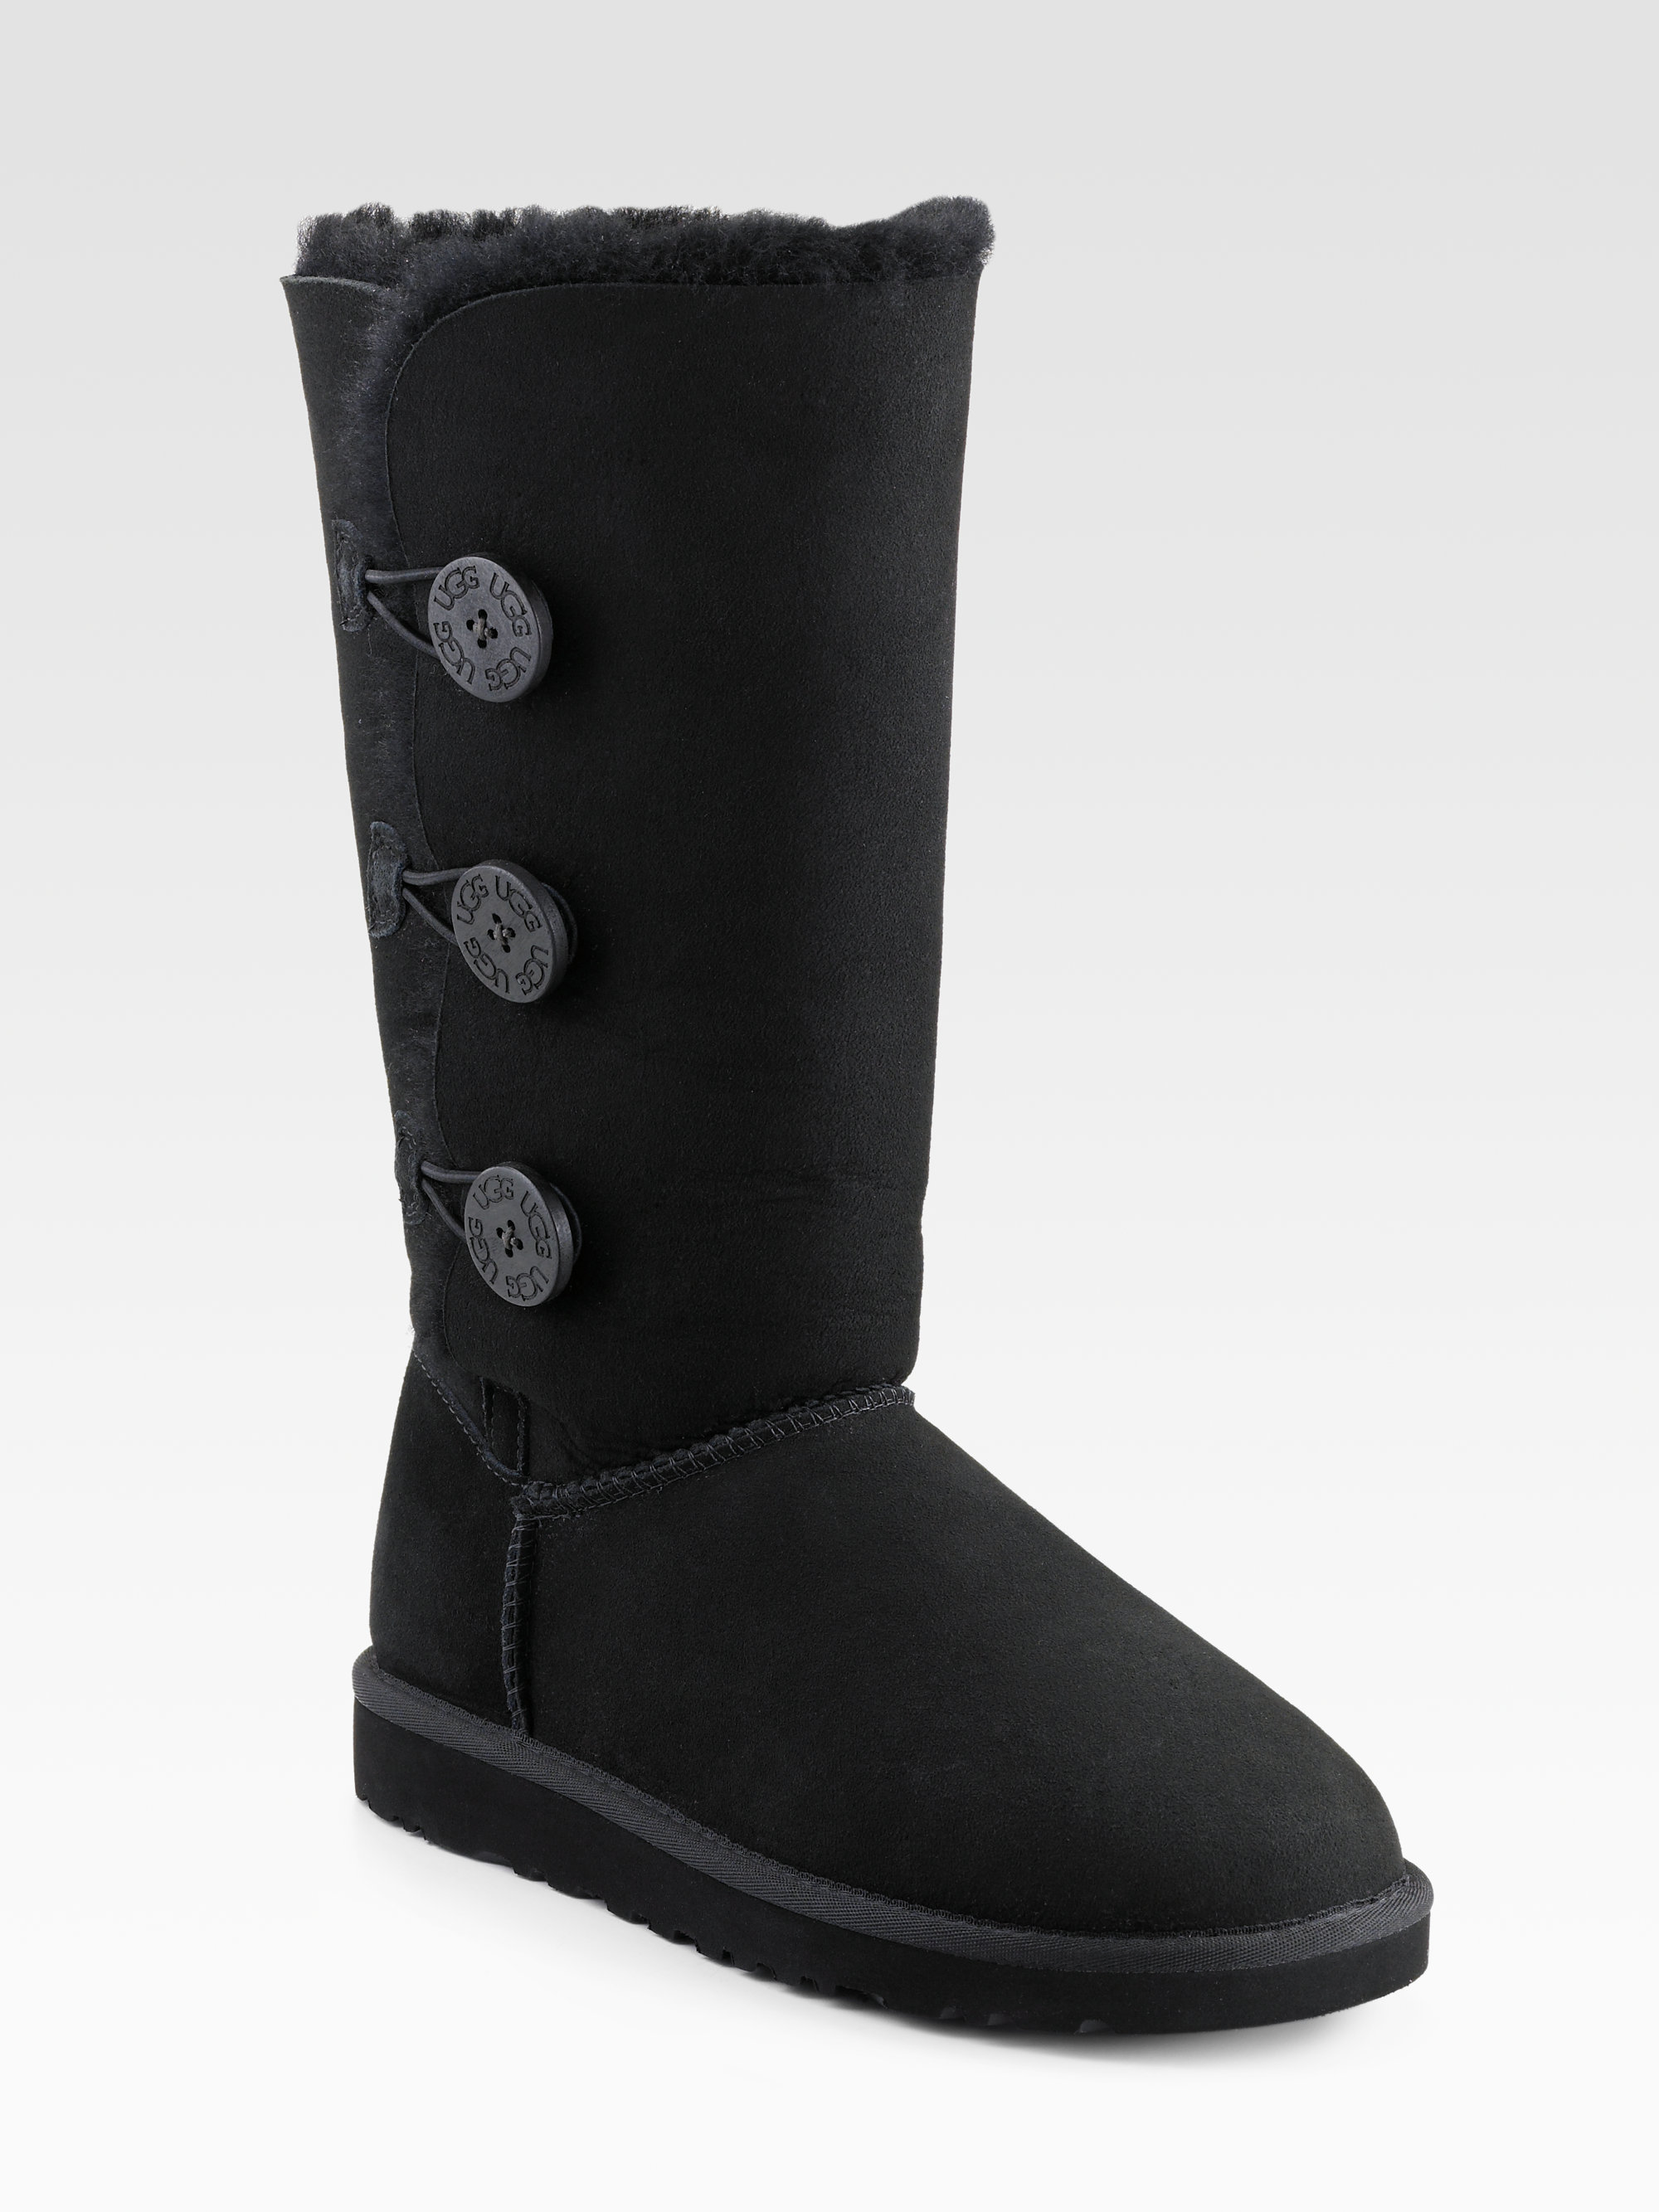 Ugg Tall Bailey Button Triplet Suede Amp Sheepskin Boots In